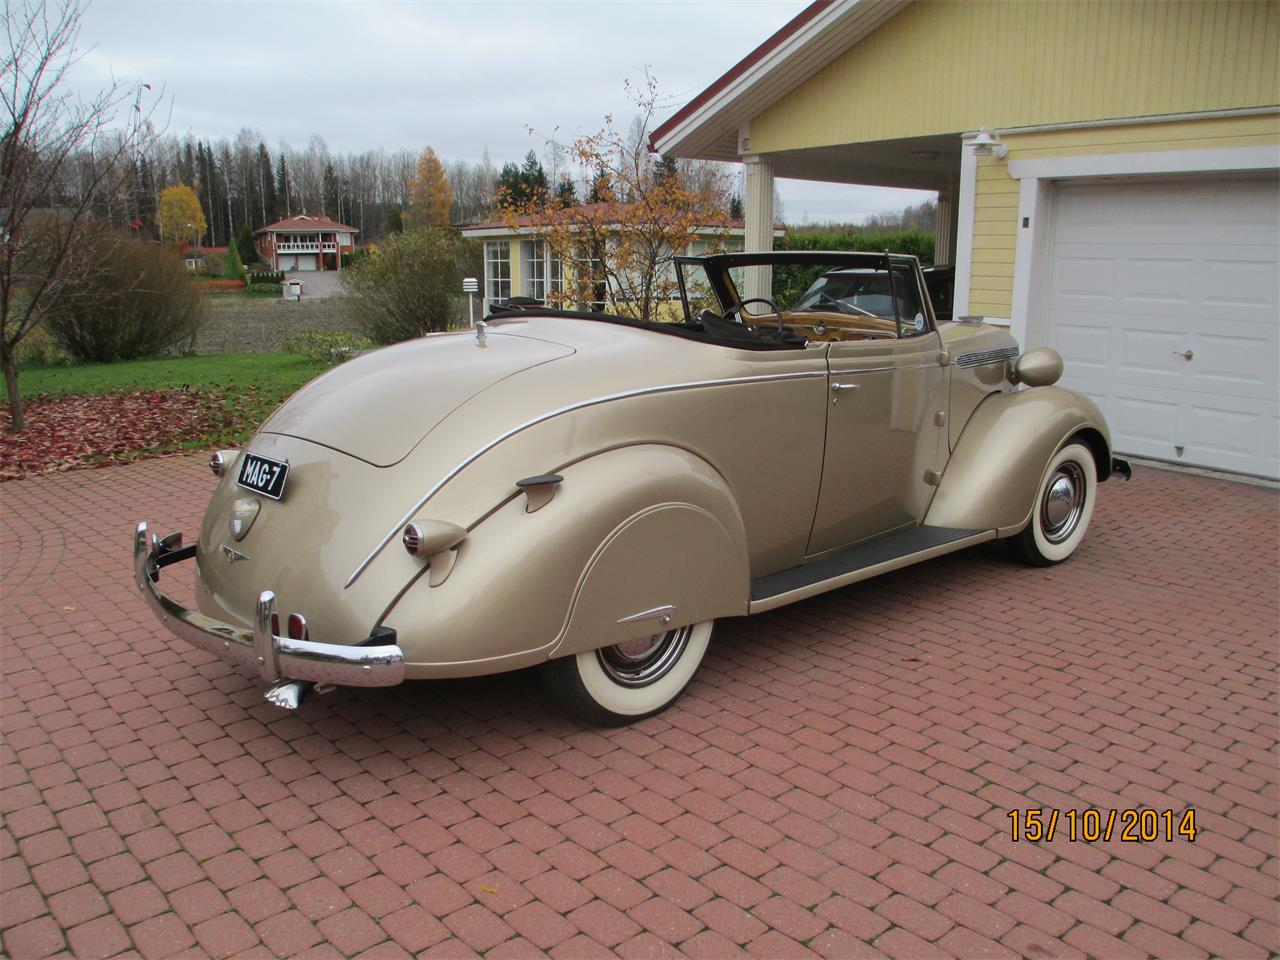 1937 Chrysler Royal for sale in Helsinki, Vantaa – photo 4